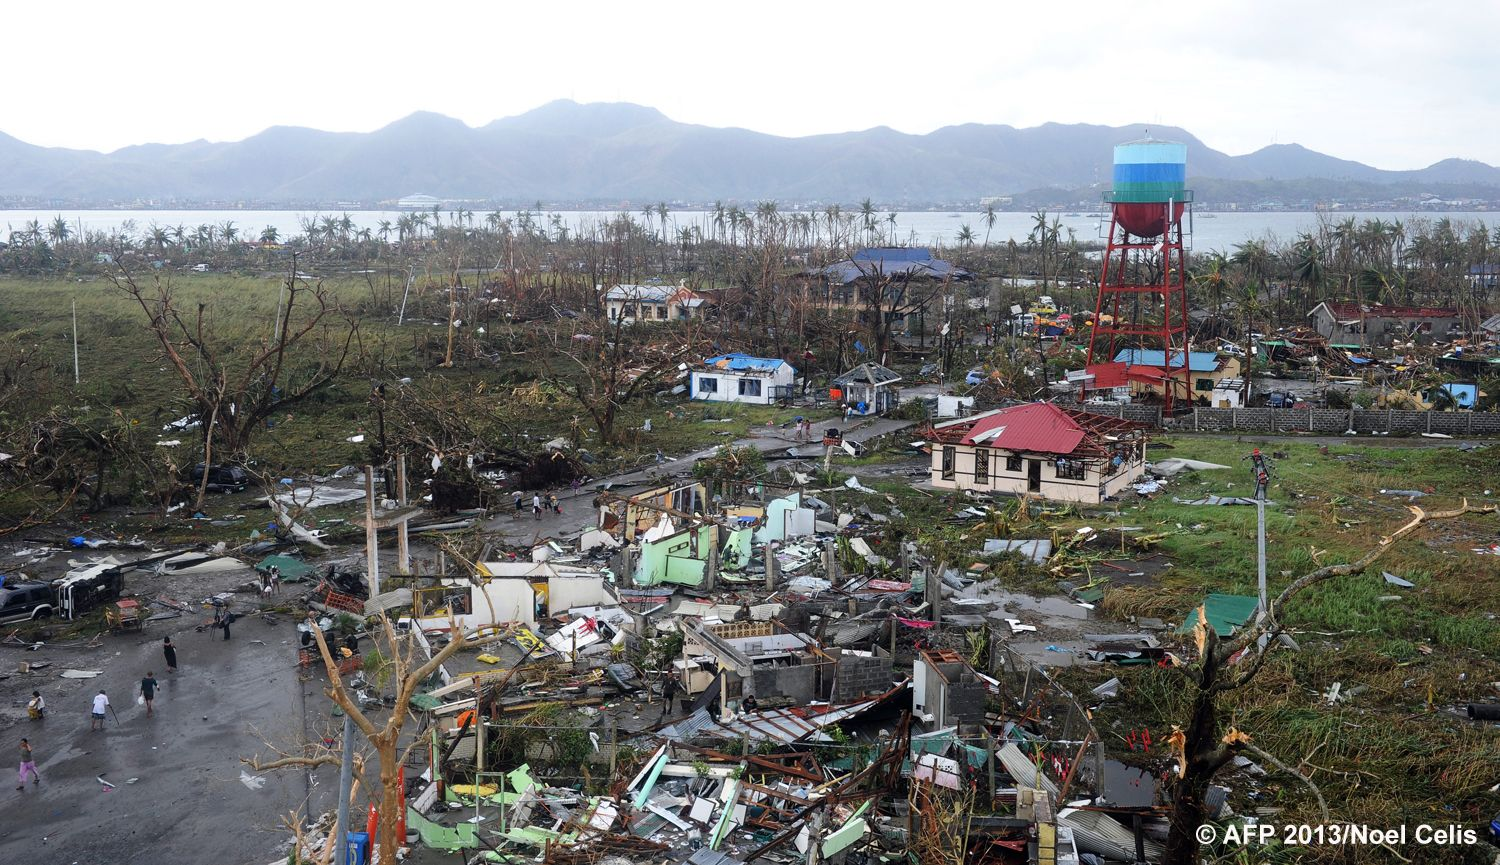 Typhoon Yolanda Emergency Appeal Unicef Philippines Donation Portal Philippines Tacloban City Vietnam Tourist